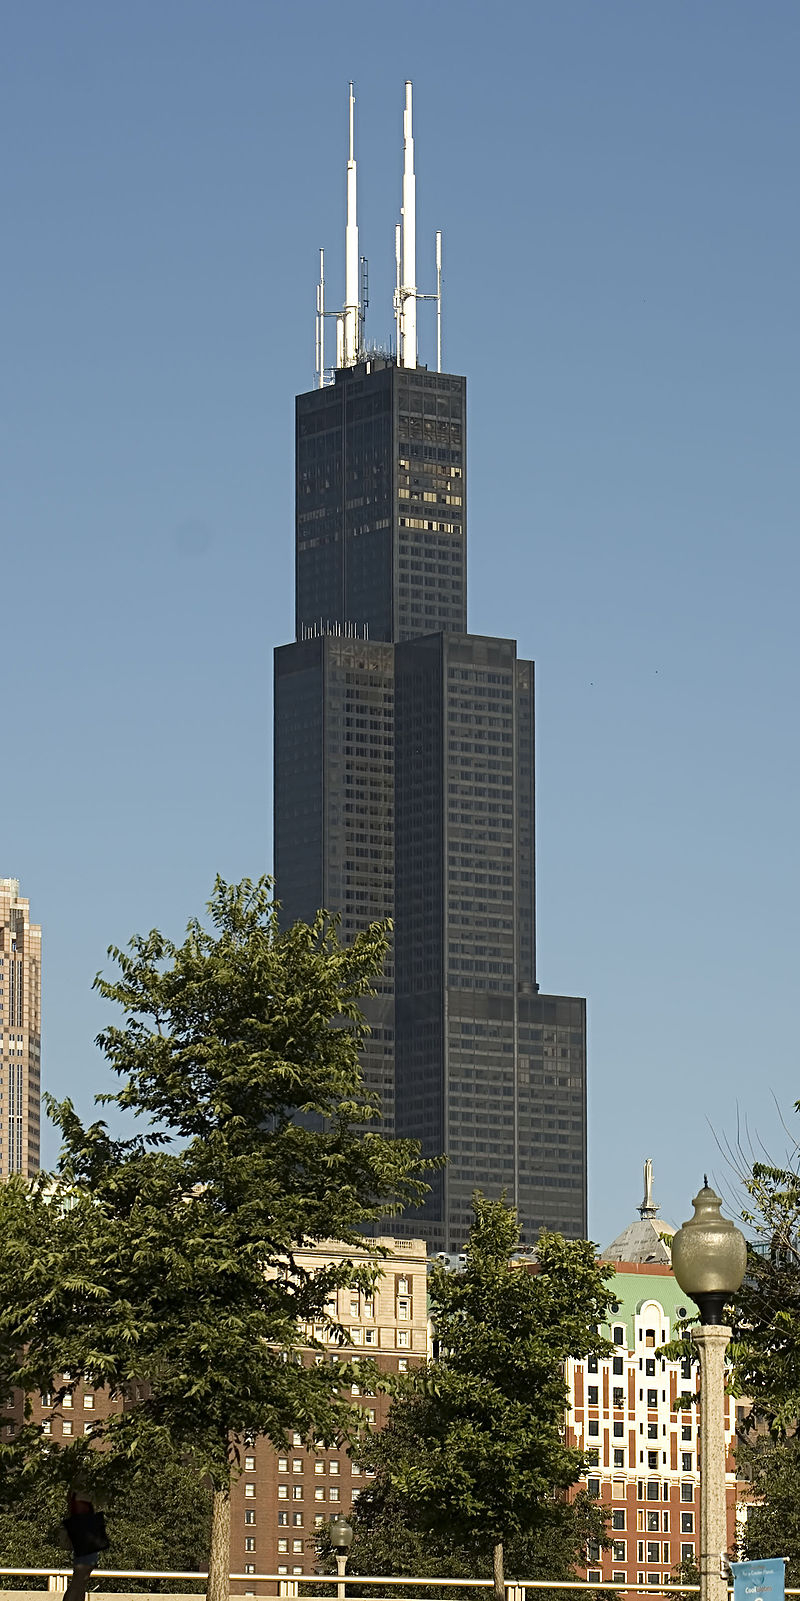 KM 5939 sears tower august 2007 B.jpg